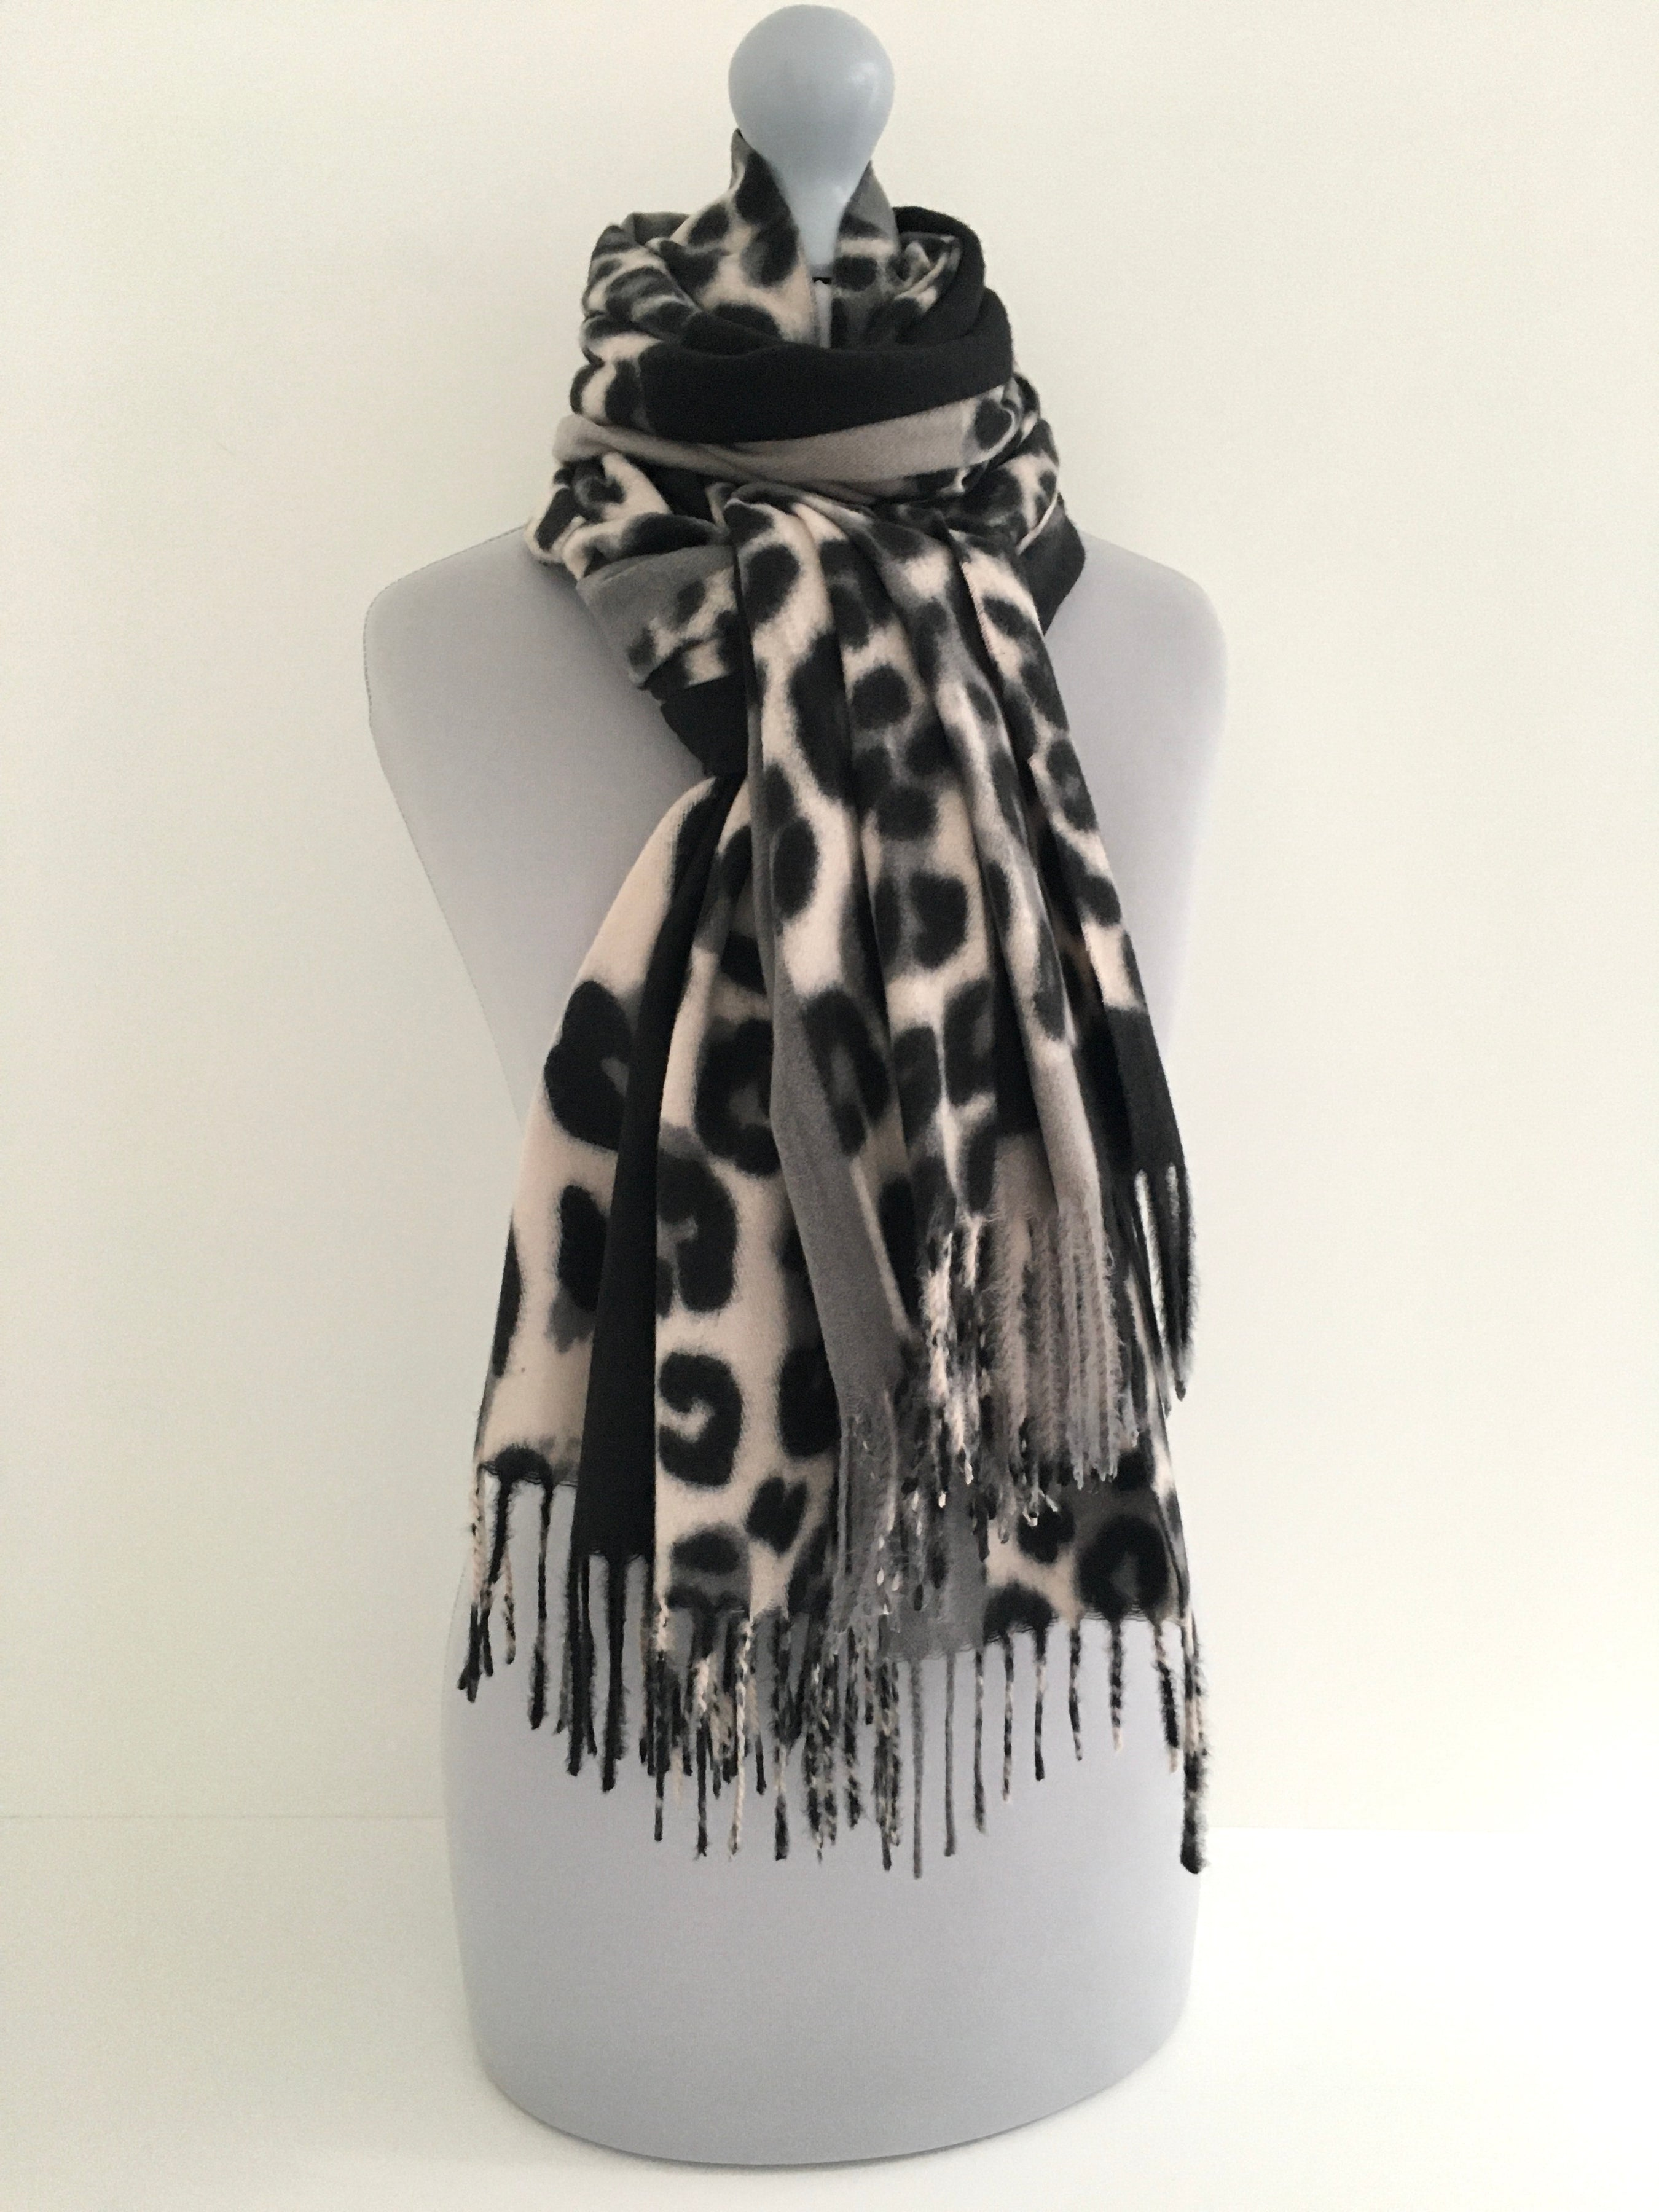 A-SHU LARGE GREY WOOL MIX FLEECE FEEL BLOCK PRINT LEOPARD PRINT SHAWL SCARF - A-SHU.CO.UK